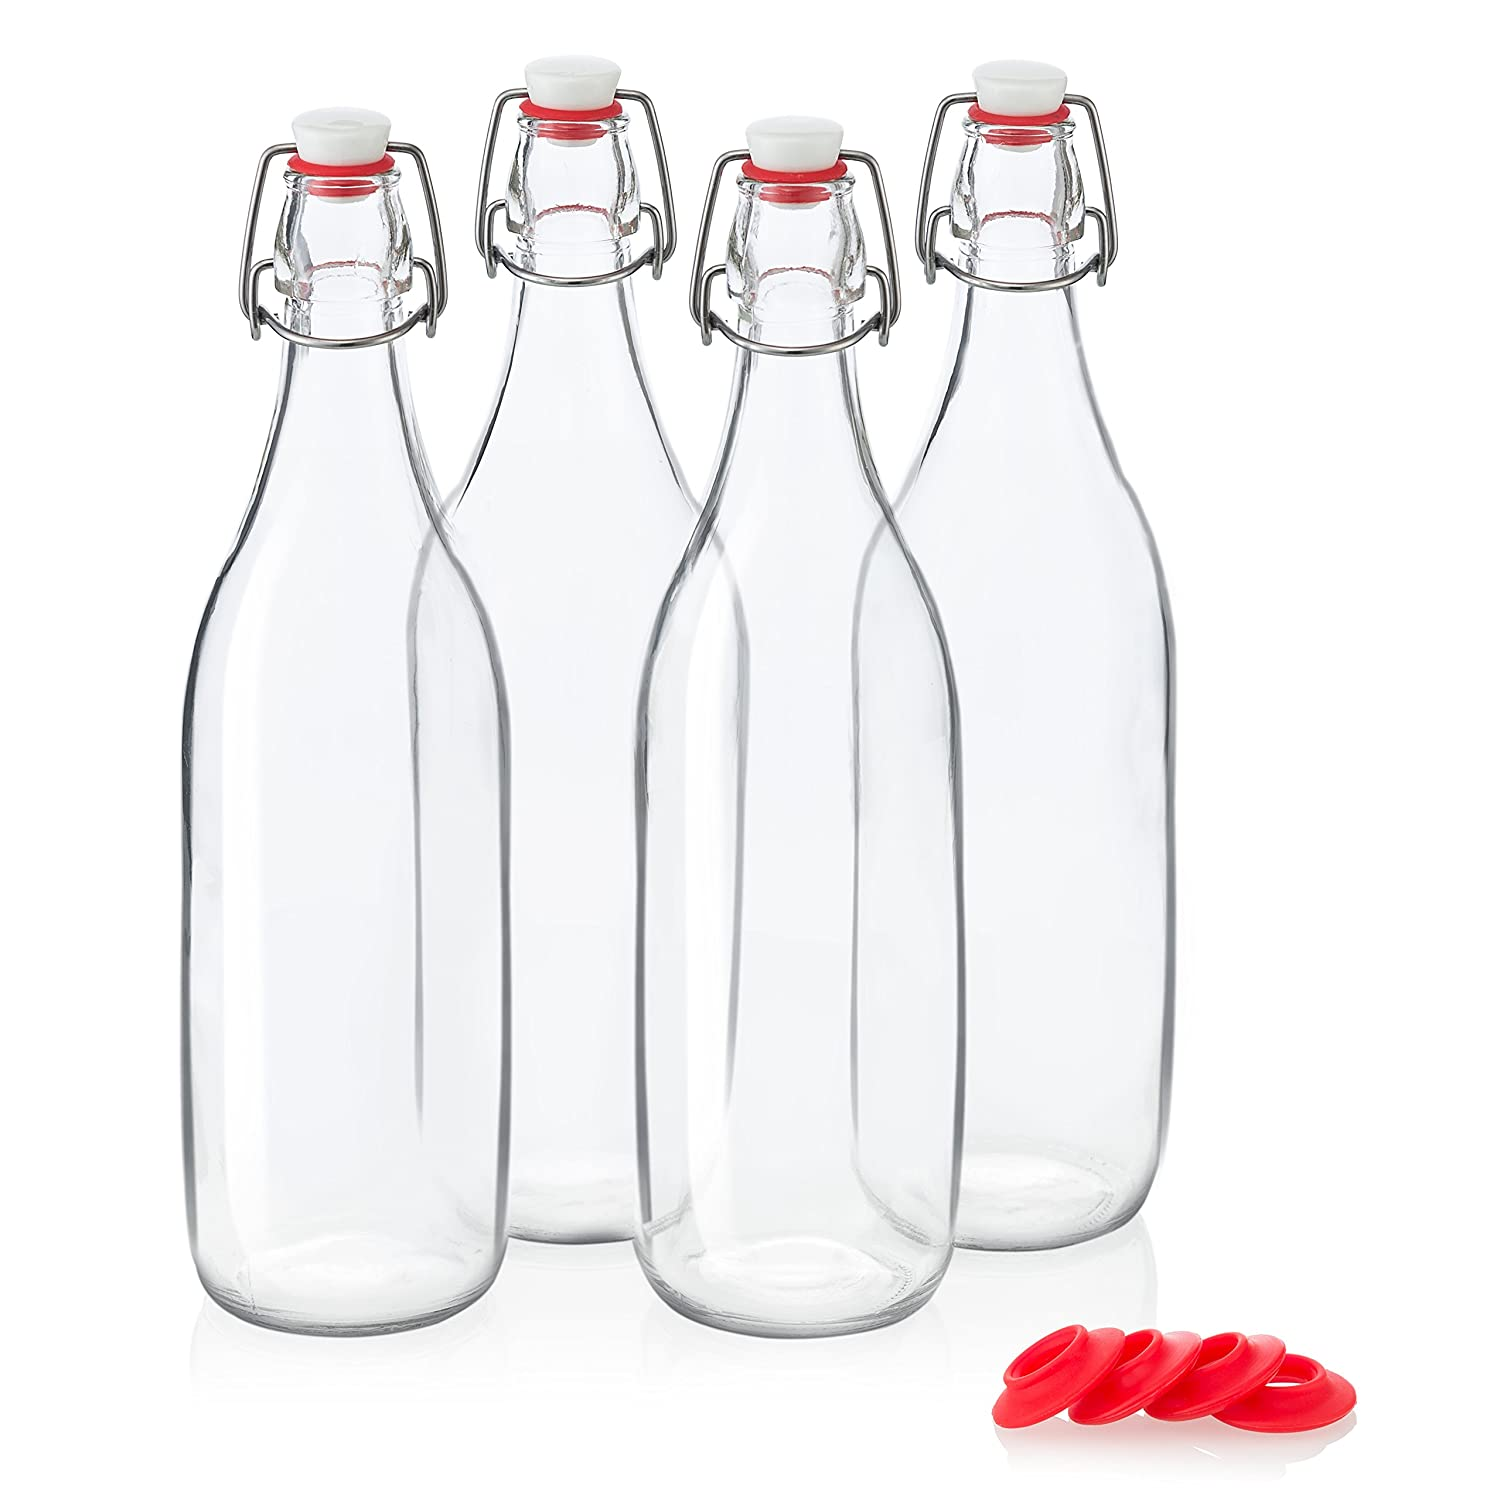 Swing Top Glass Bottles 32oz / 1 Litre - CERAMIC TOPS - Giara Glass Bottles With Stopper Caps - Flip Top Water Bottles - Clear [4pk Set] Otis Classic